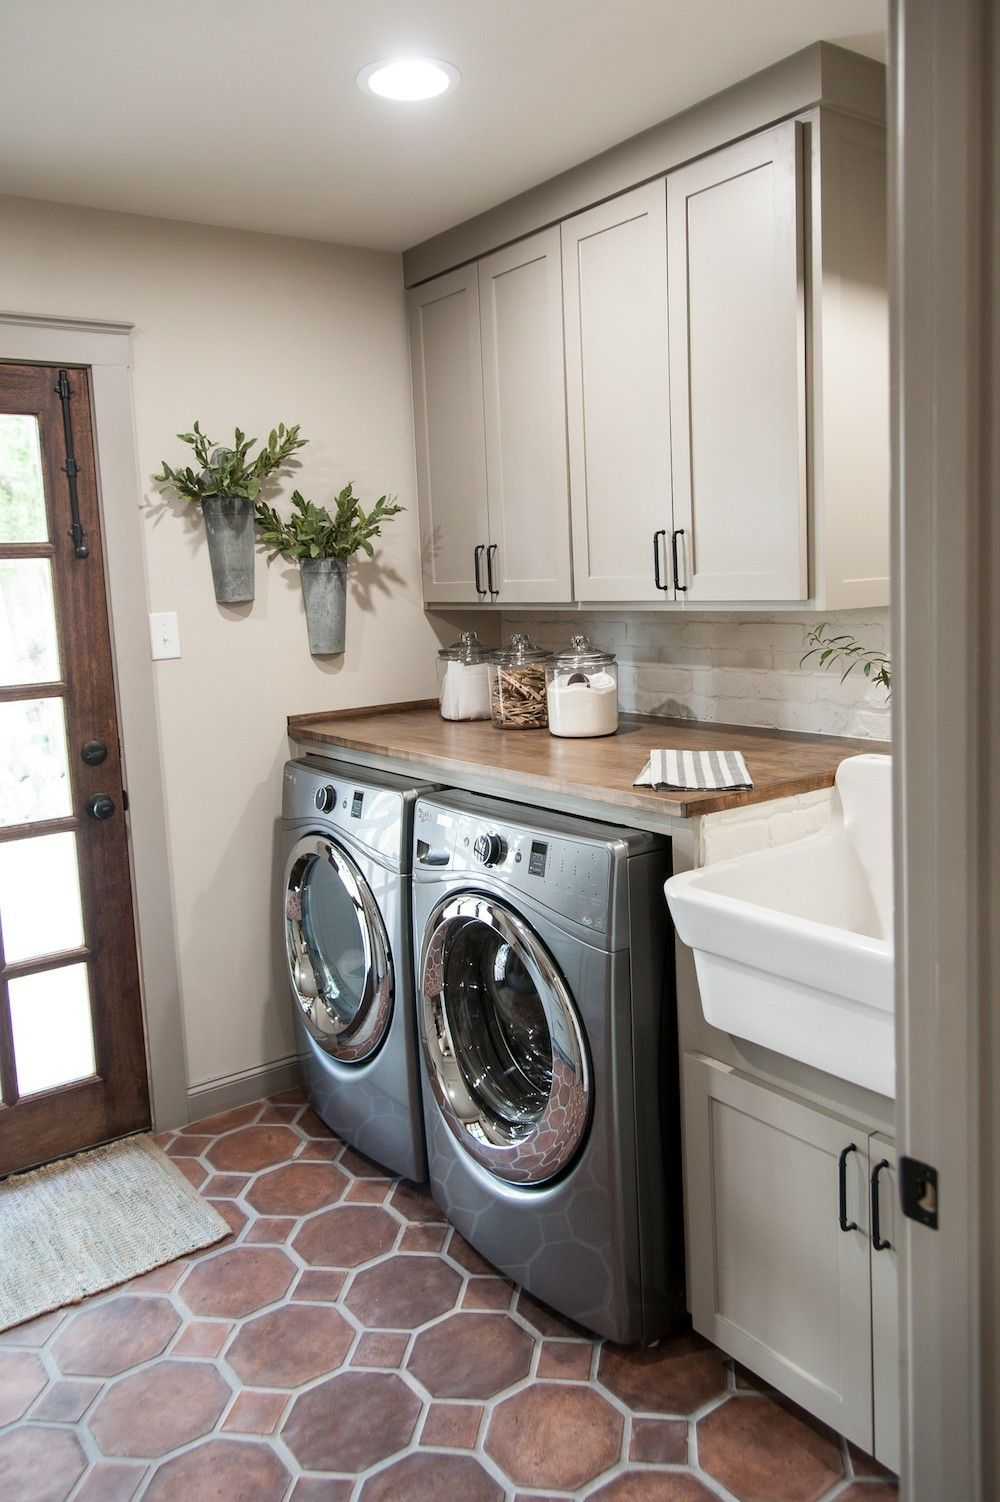 clean cabinets and sink room space white give in this the pin a for cabinet laundry look